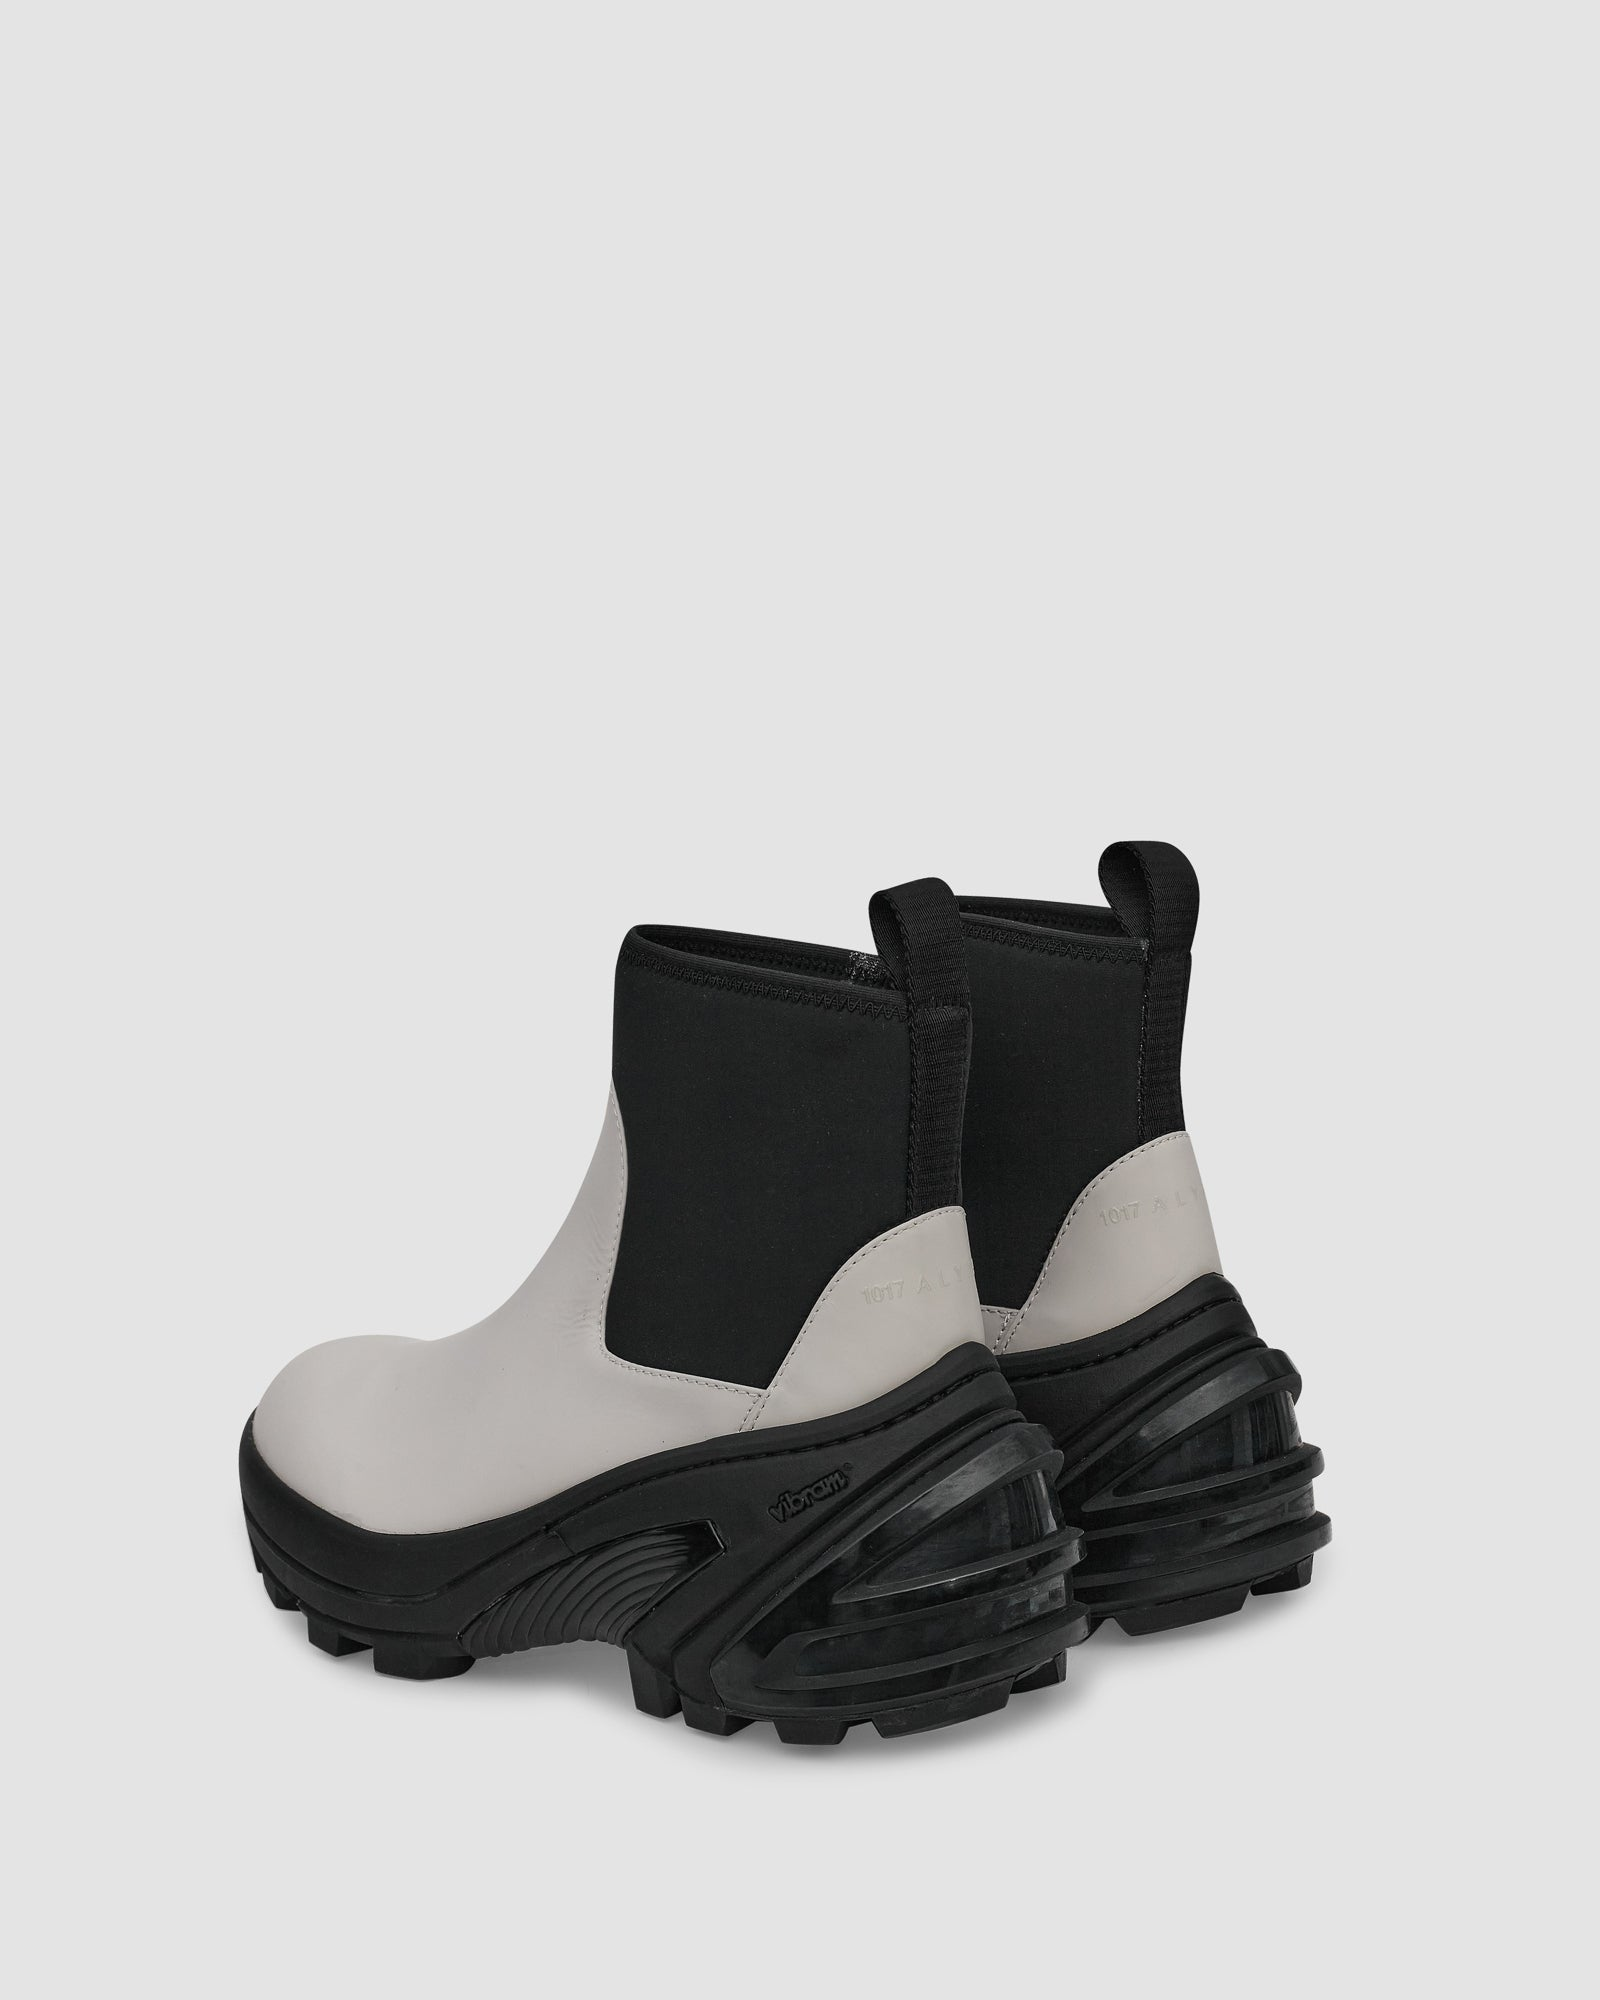 MID BOOT WITH VIBRAM SOLE